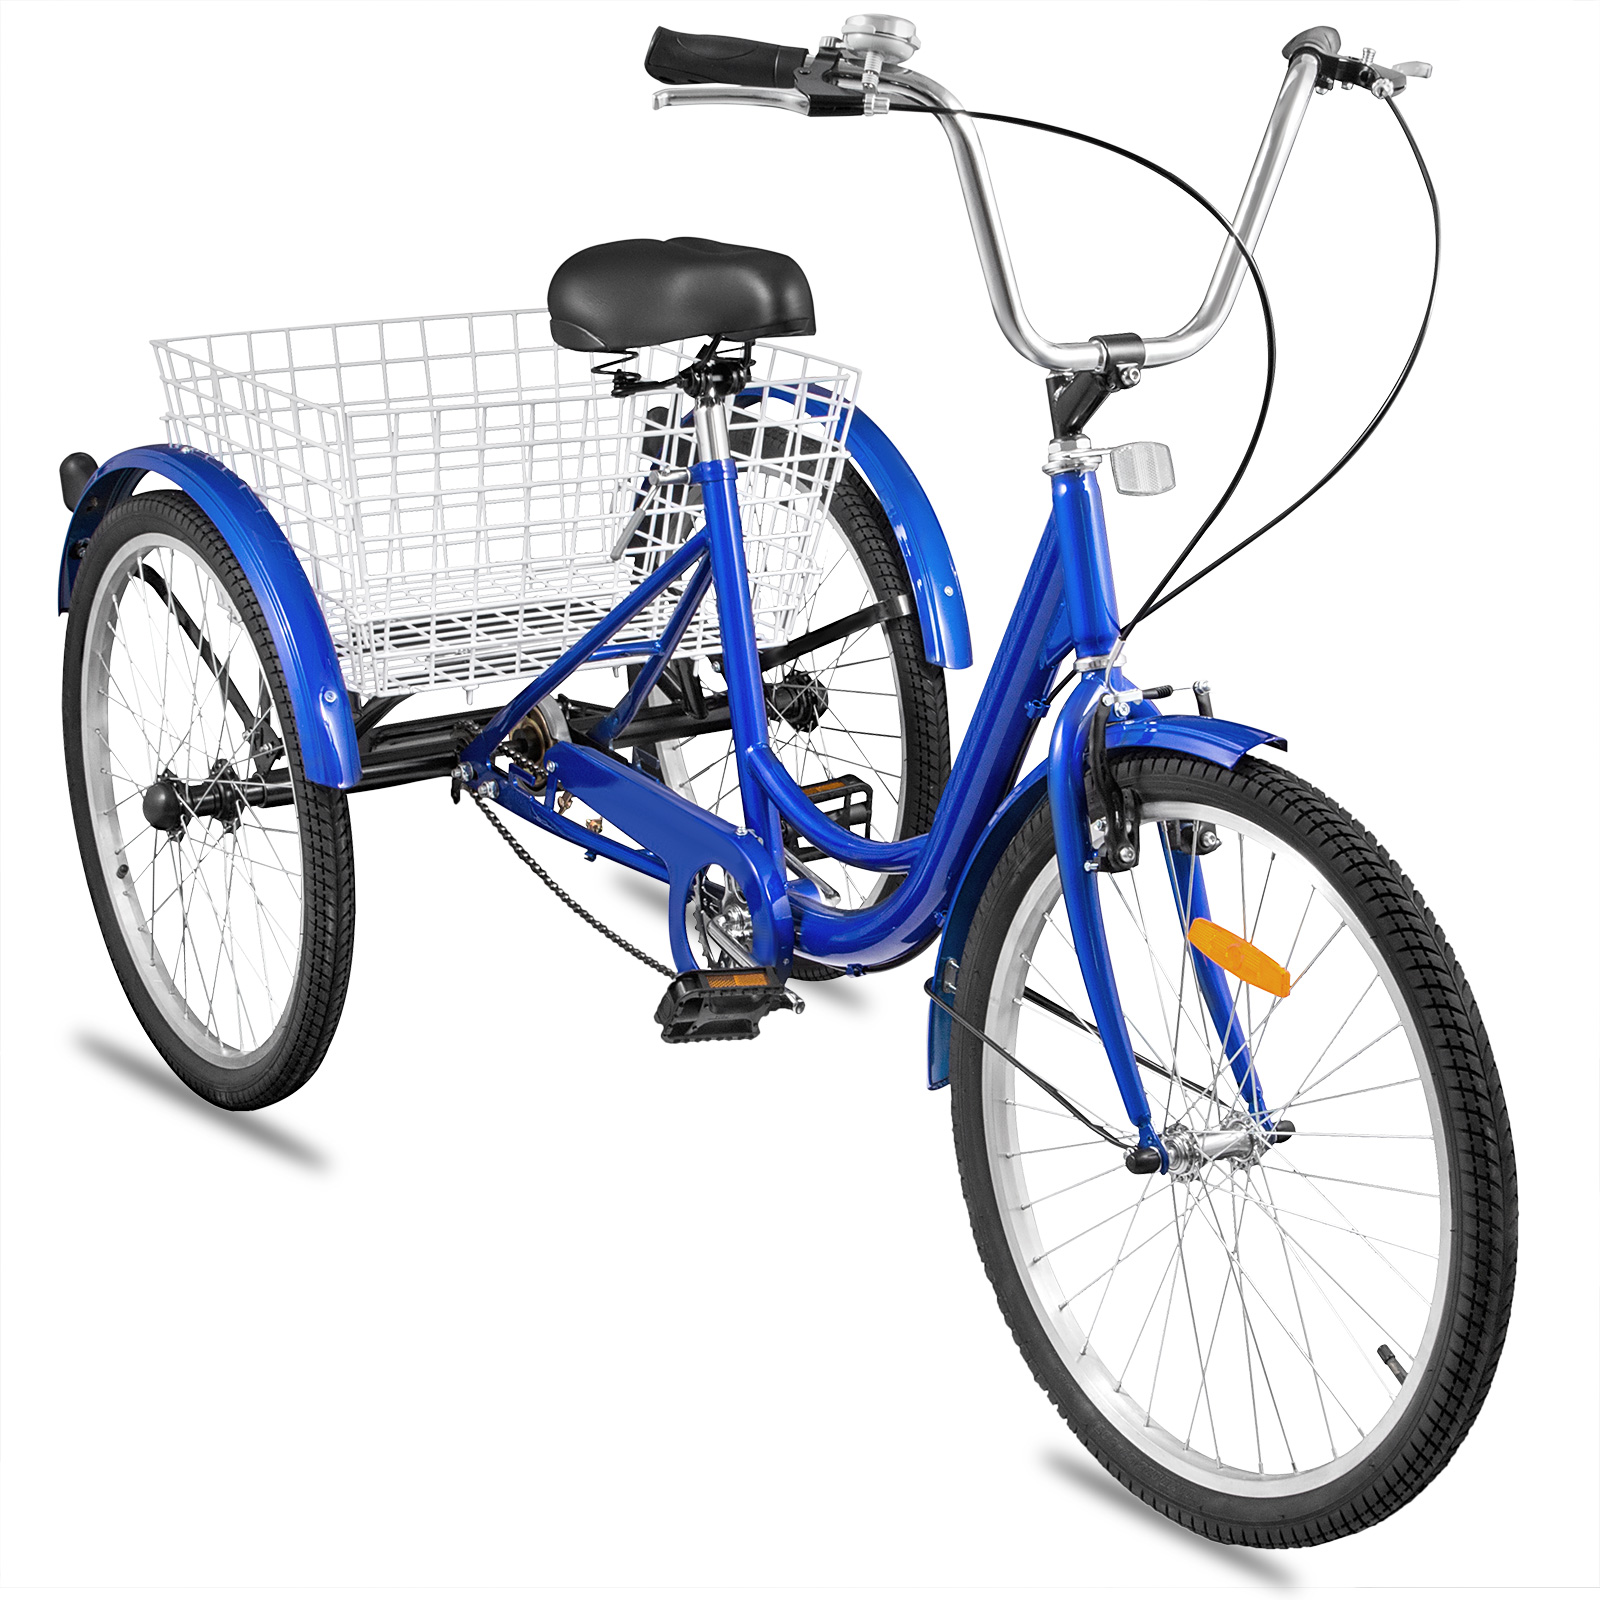 20-24-26-034-Adult-Tricycle-1-7-Speed-3-Wheel-Large-Basket-For-Shopping-Optional thumbnail 153